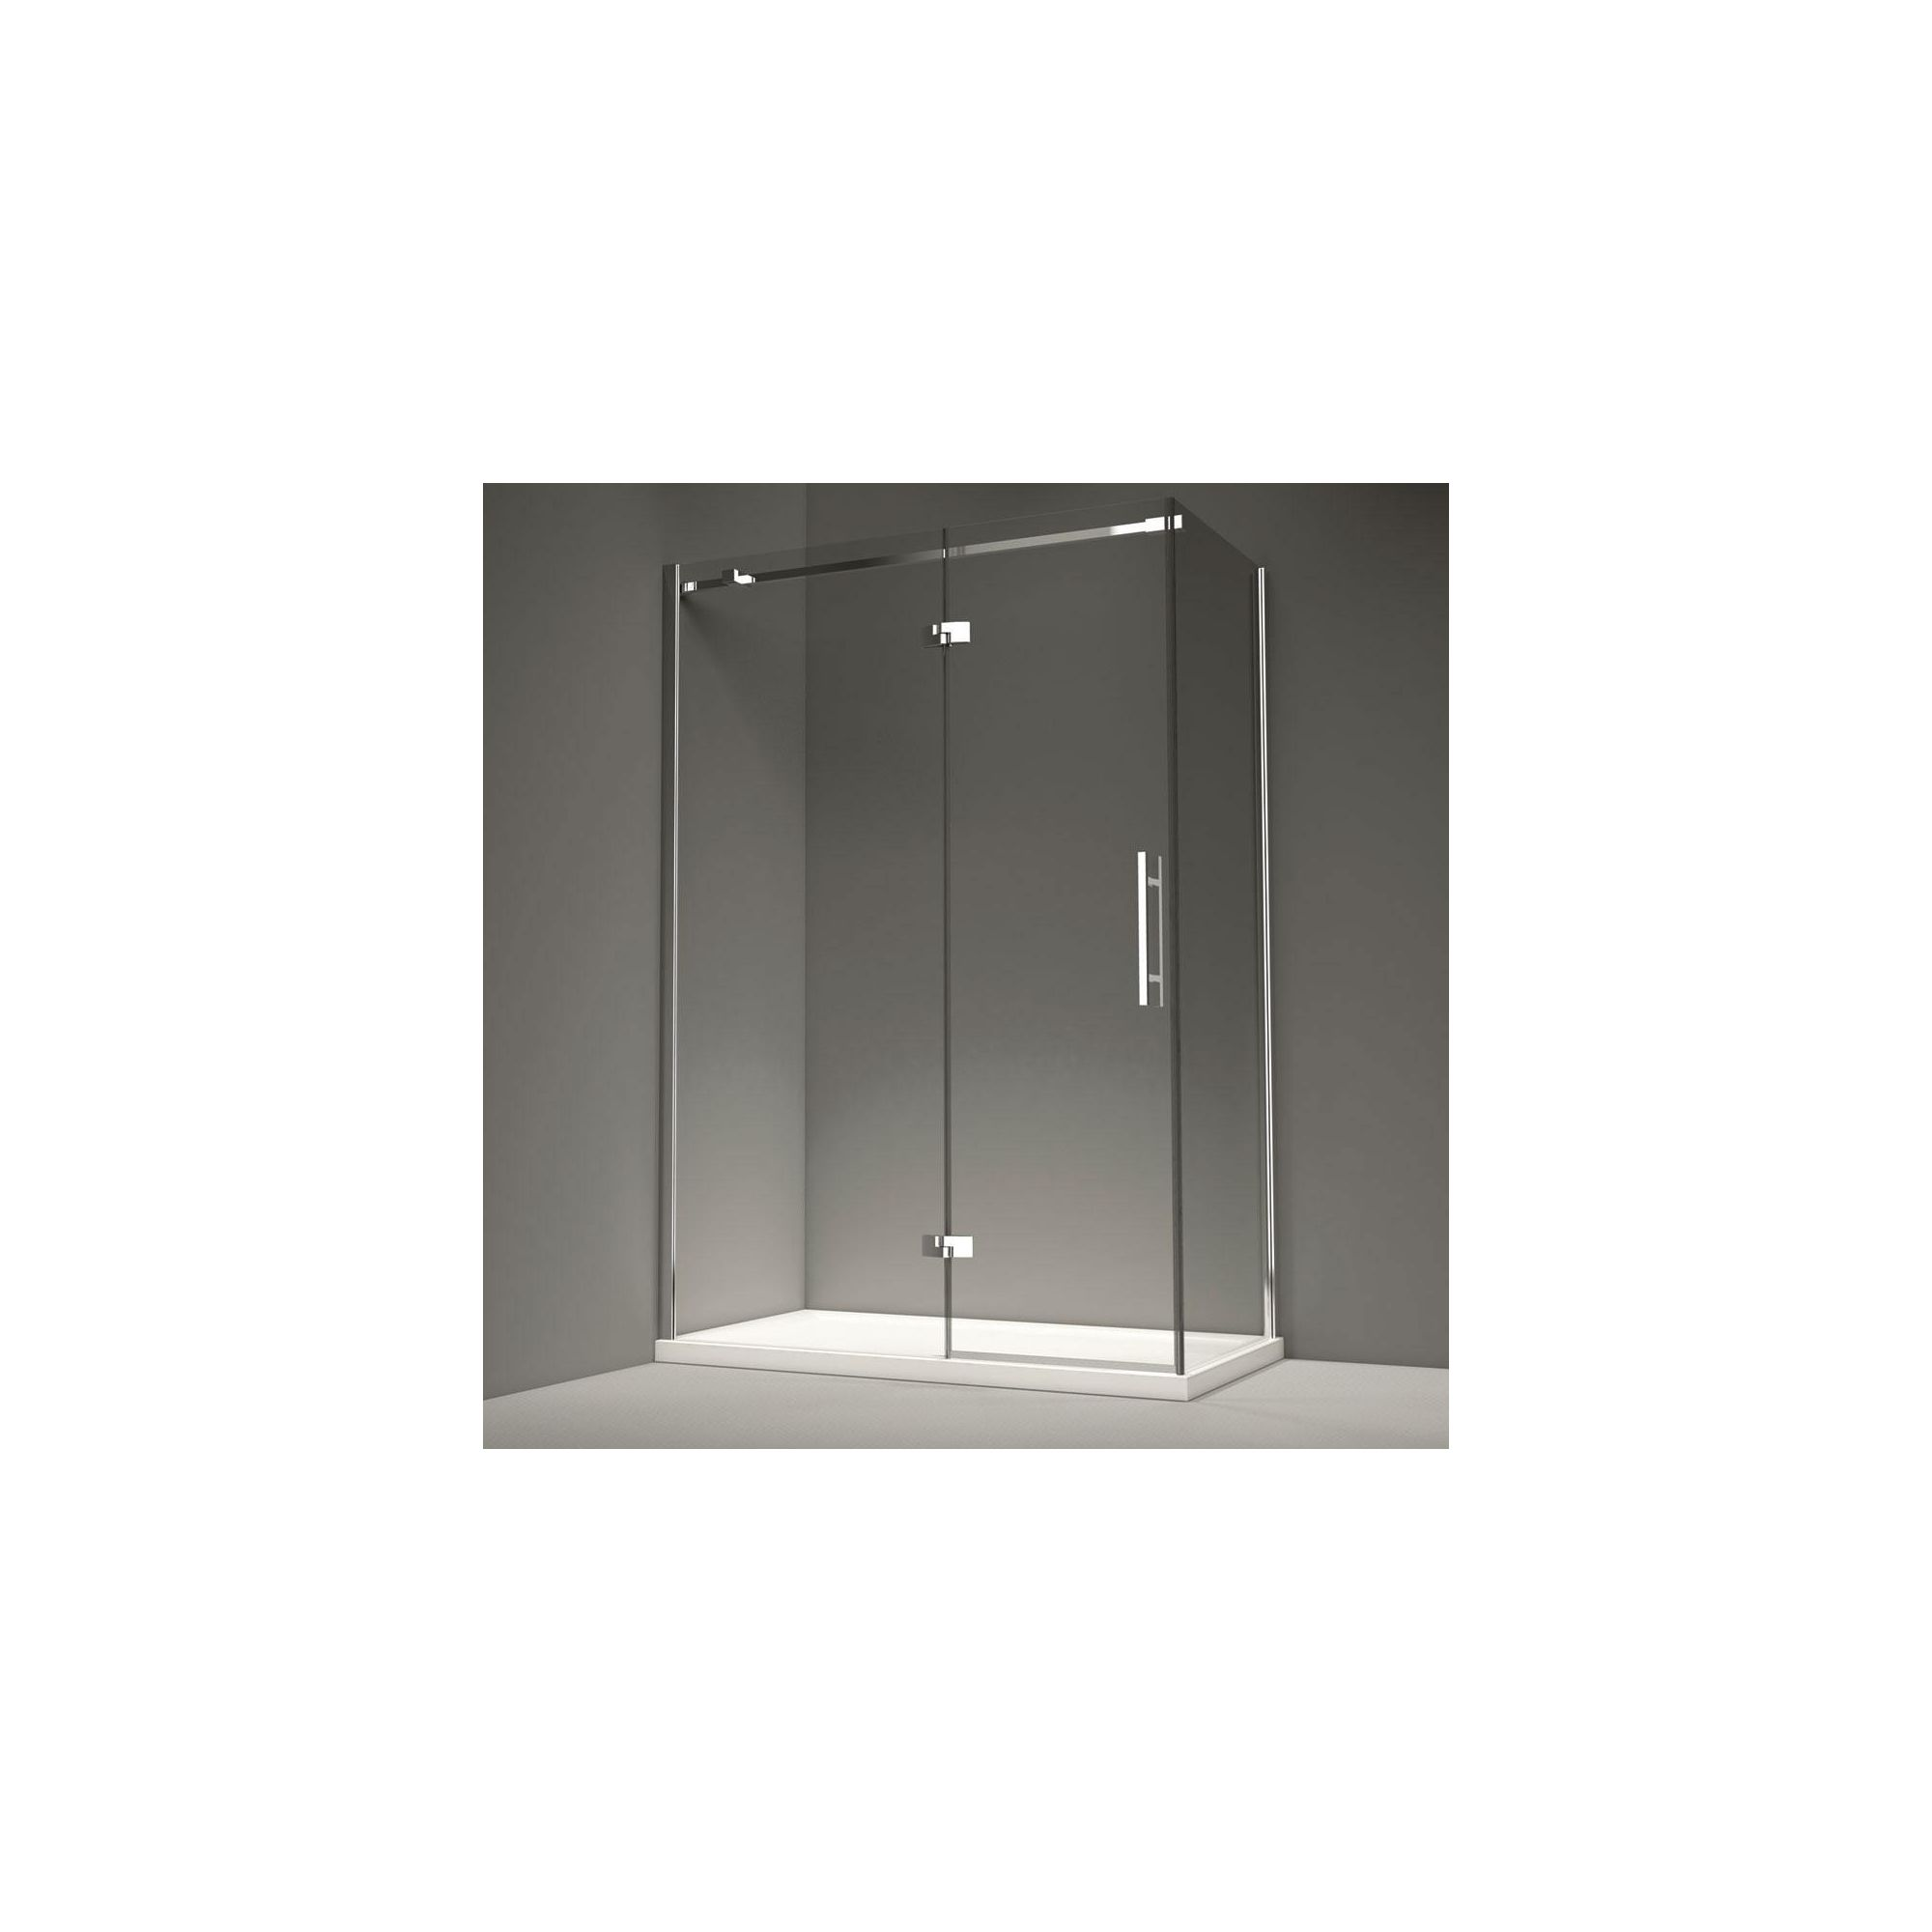 Merlyn Series 9 Inline Hinged Shower Door, 1400mm Wide, 8mm Glass, Left Handed at Tescos Direct